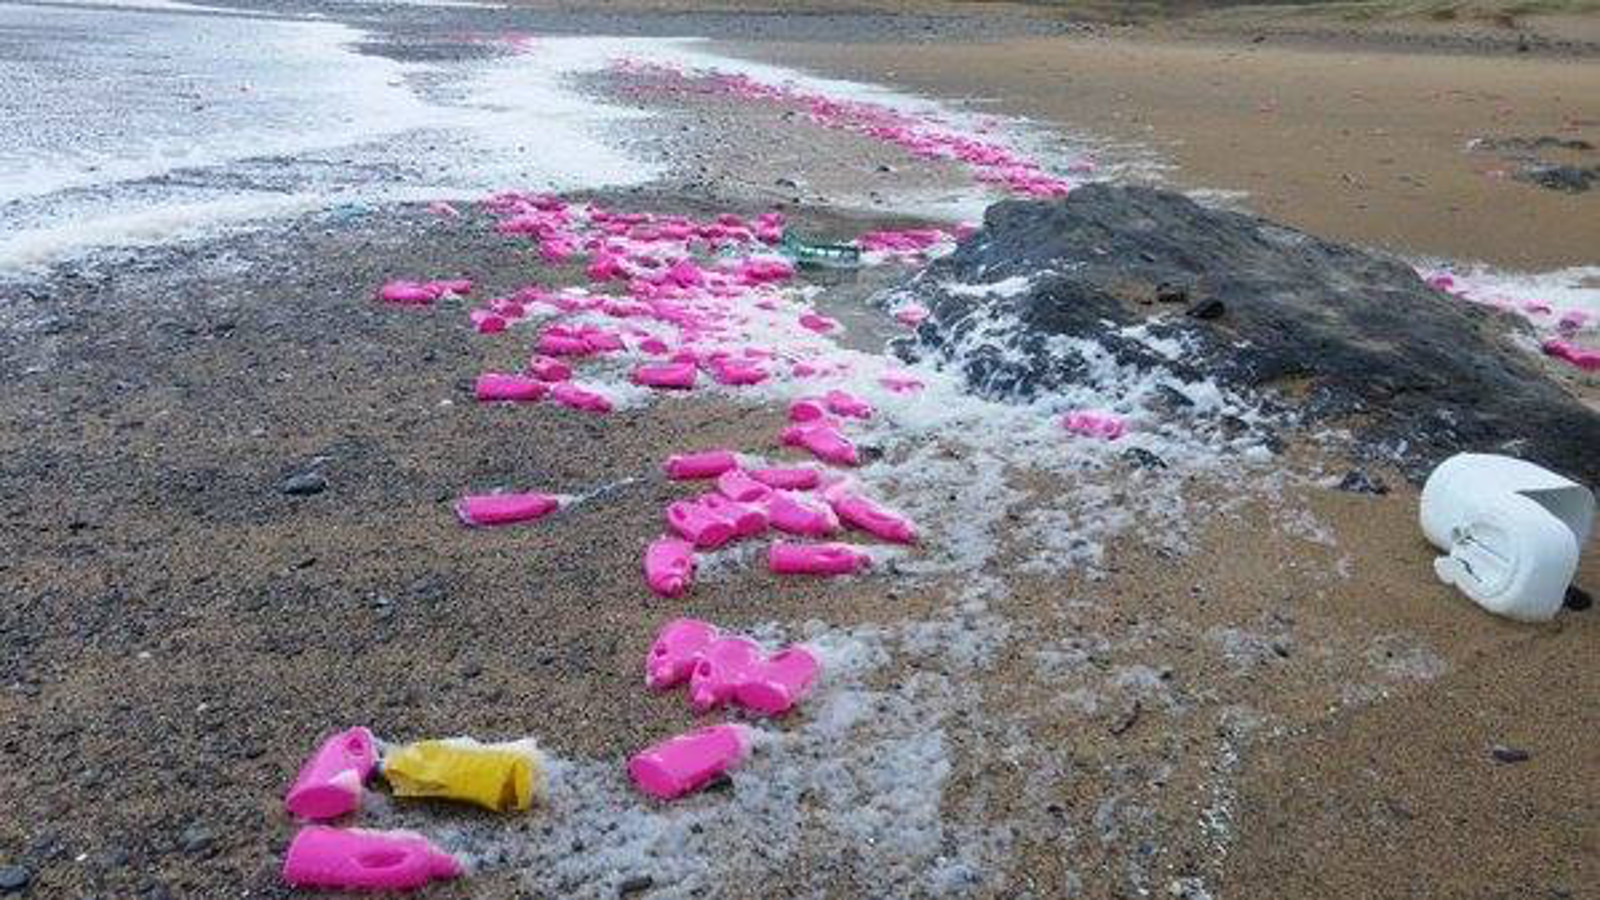 These Images of Hot Pink Bottles Washed Ashore Tell a Bigger Story About Ocean Trash (PHOTOS)